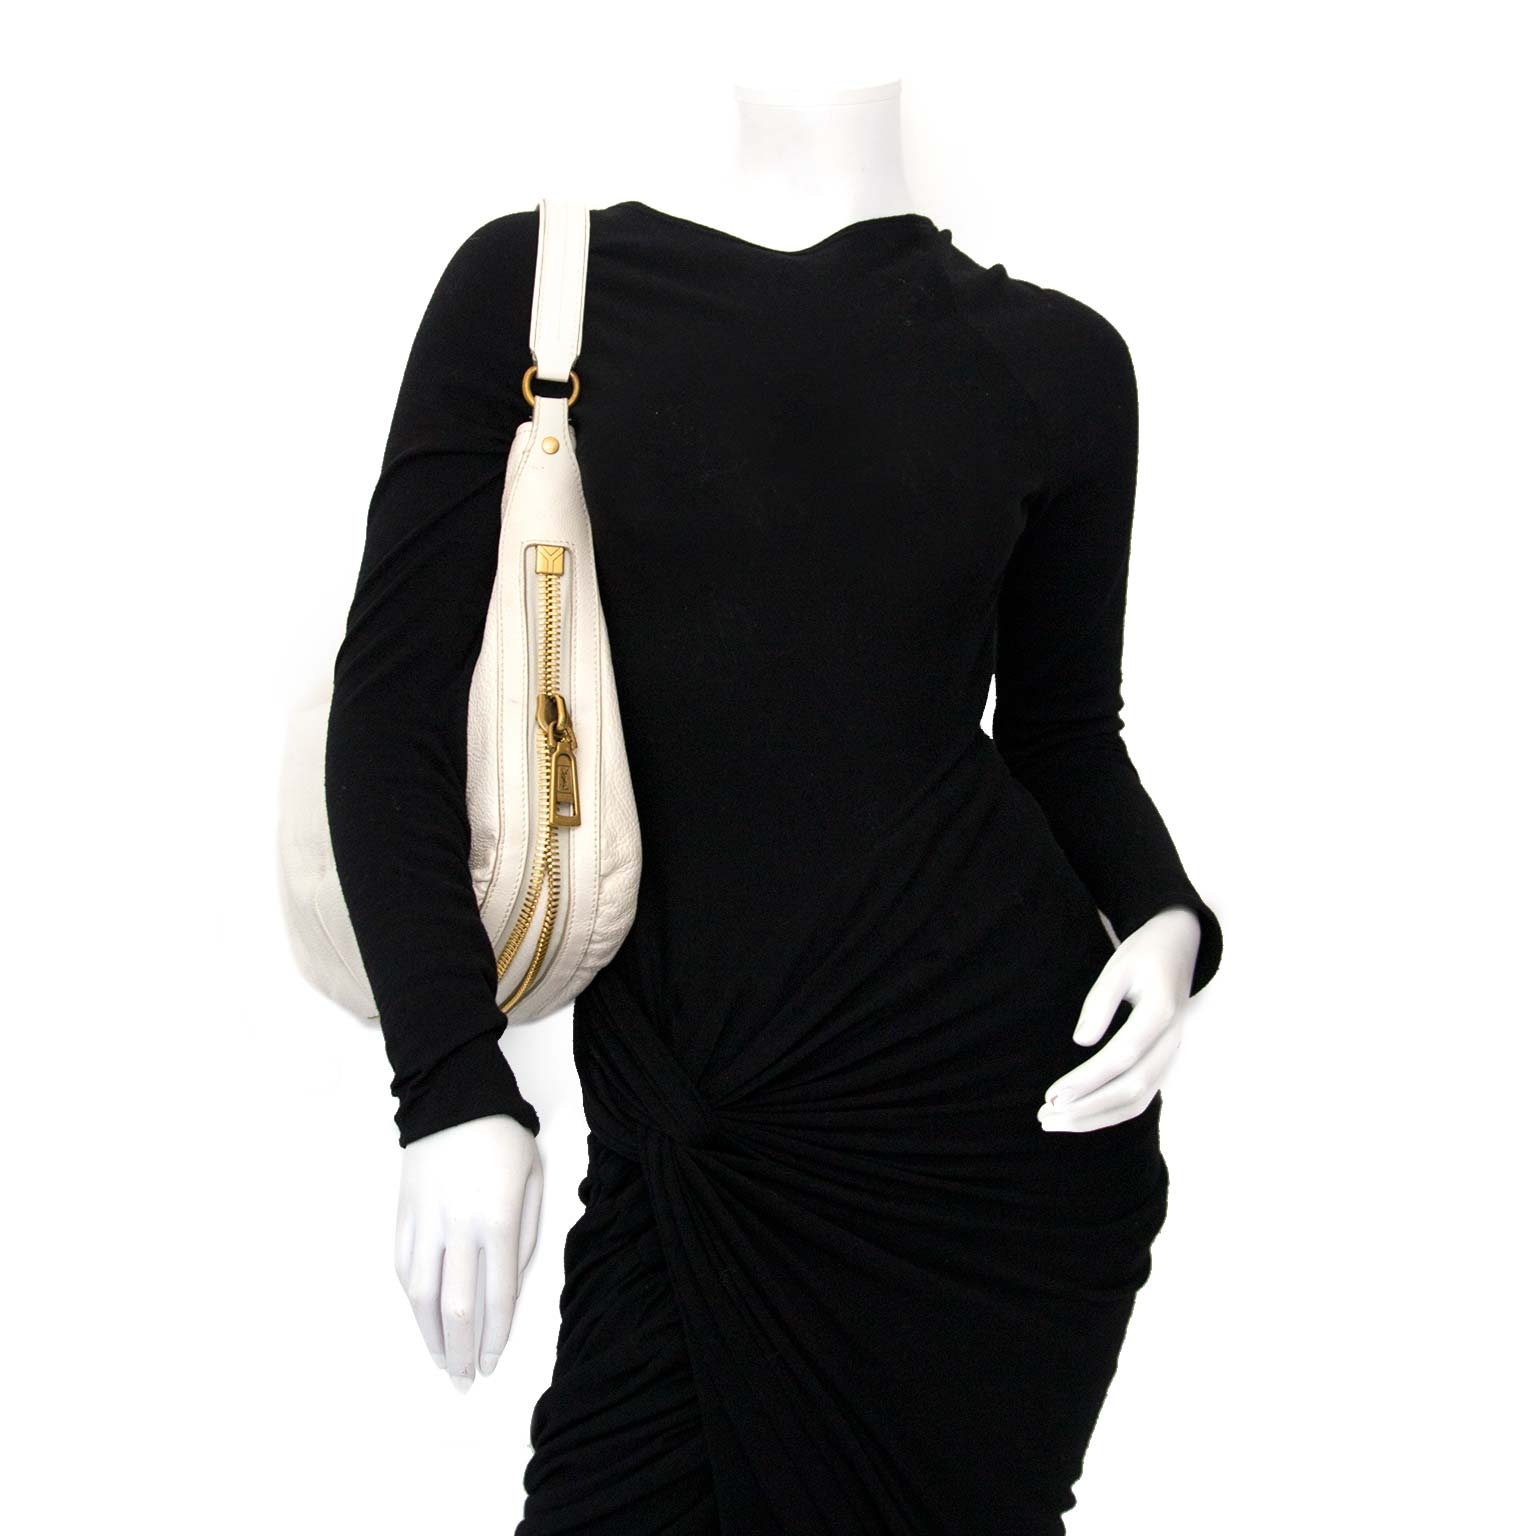 Yves Saint Laurent White Caviar Leather Hobo Bag Buy authentic designer Yves Saint Laurent YSL secondhand bags at Labellov at the best price. Safe and secure shopping. Koop tweedehands authentieke Yves Saint Laurent tassen bij designer webwinkel labellov